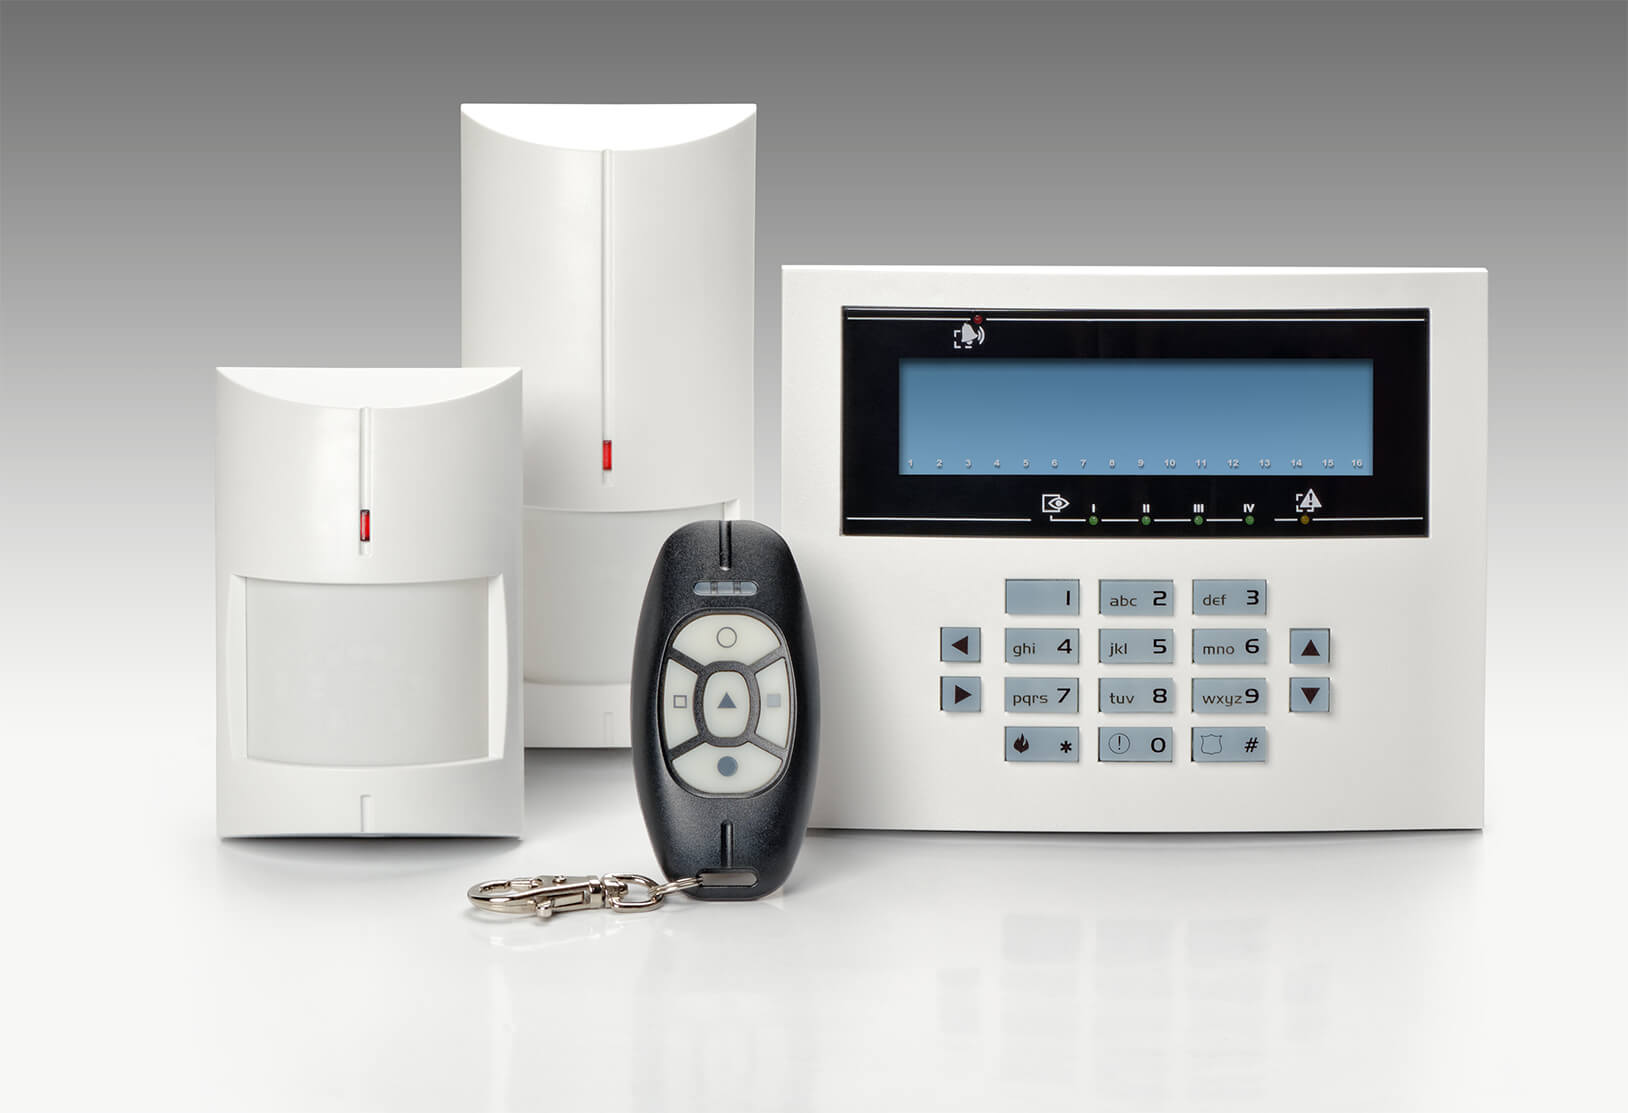 Burglar Alarms Repair in Mayfair W1 - Local Mayfair W1 alarm engineers.Call 02078872244 - See cost/price for burglar alarm repair and book your alarm engineer. No Hidden charges,No Contracts, Book as you need.Engineers on demand.All alarm makes repaired.Same day service ability.